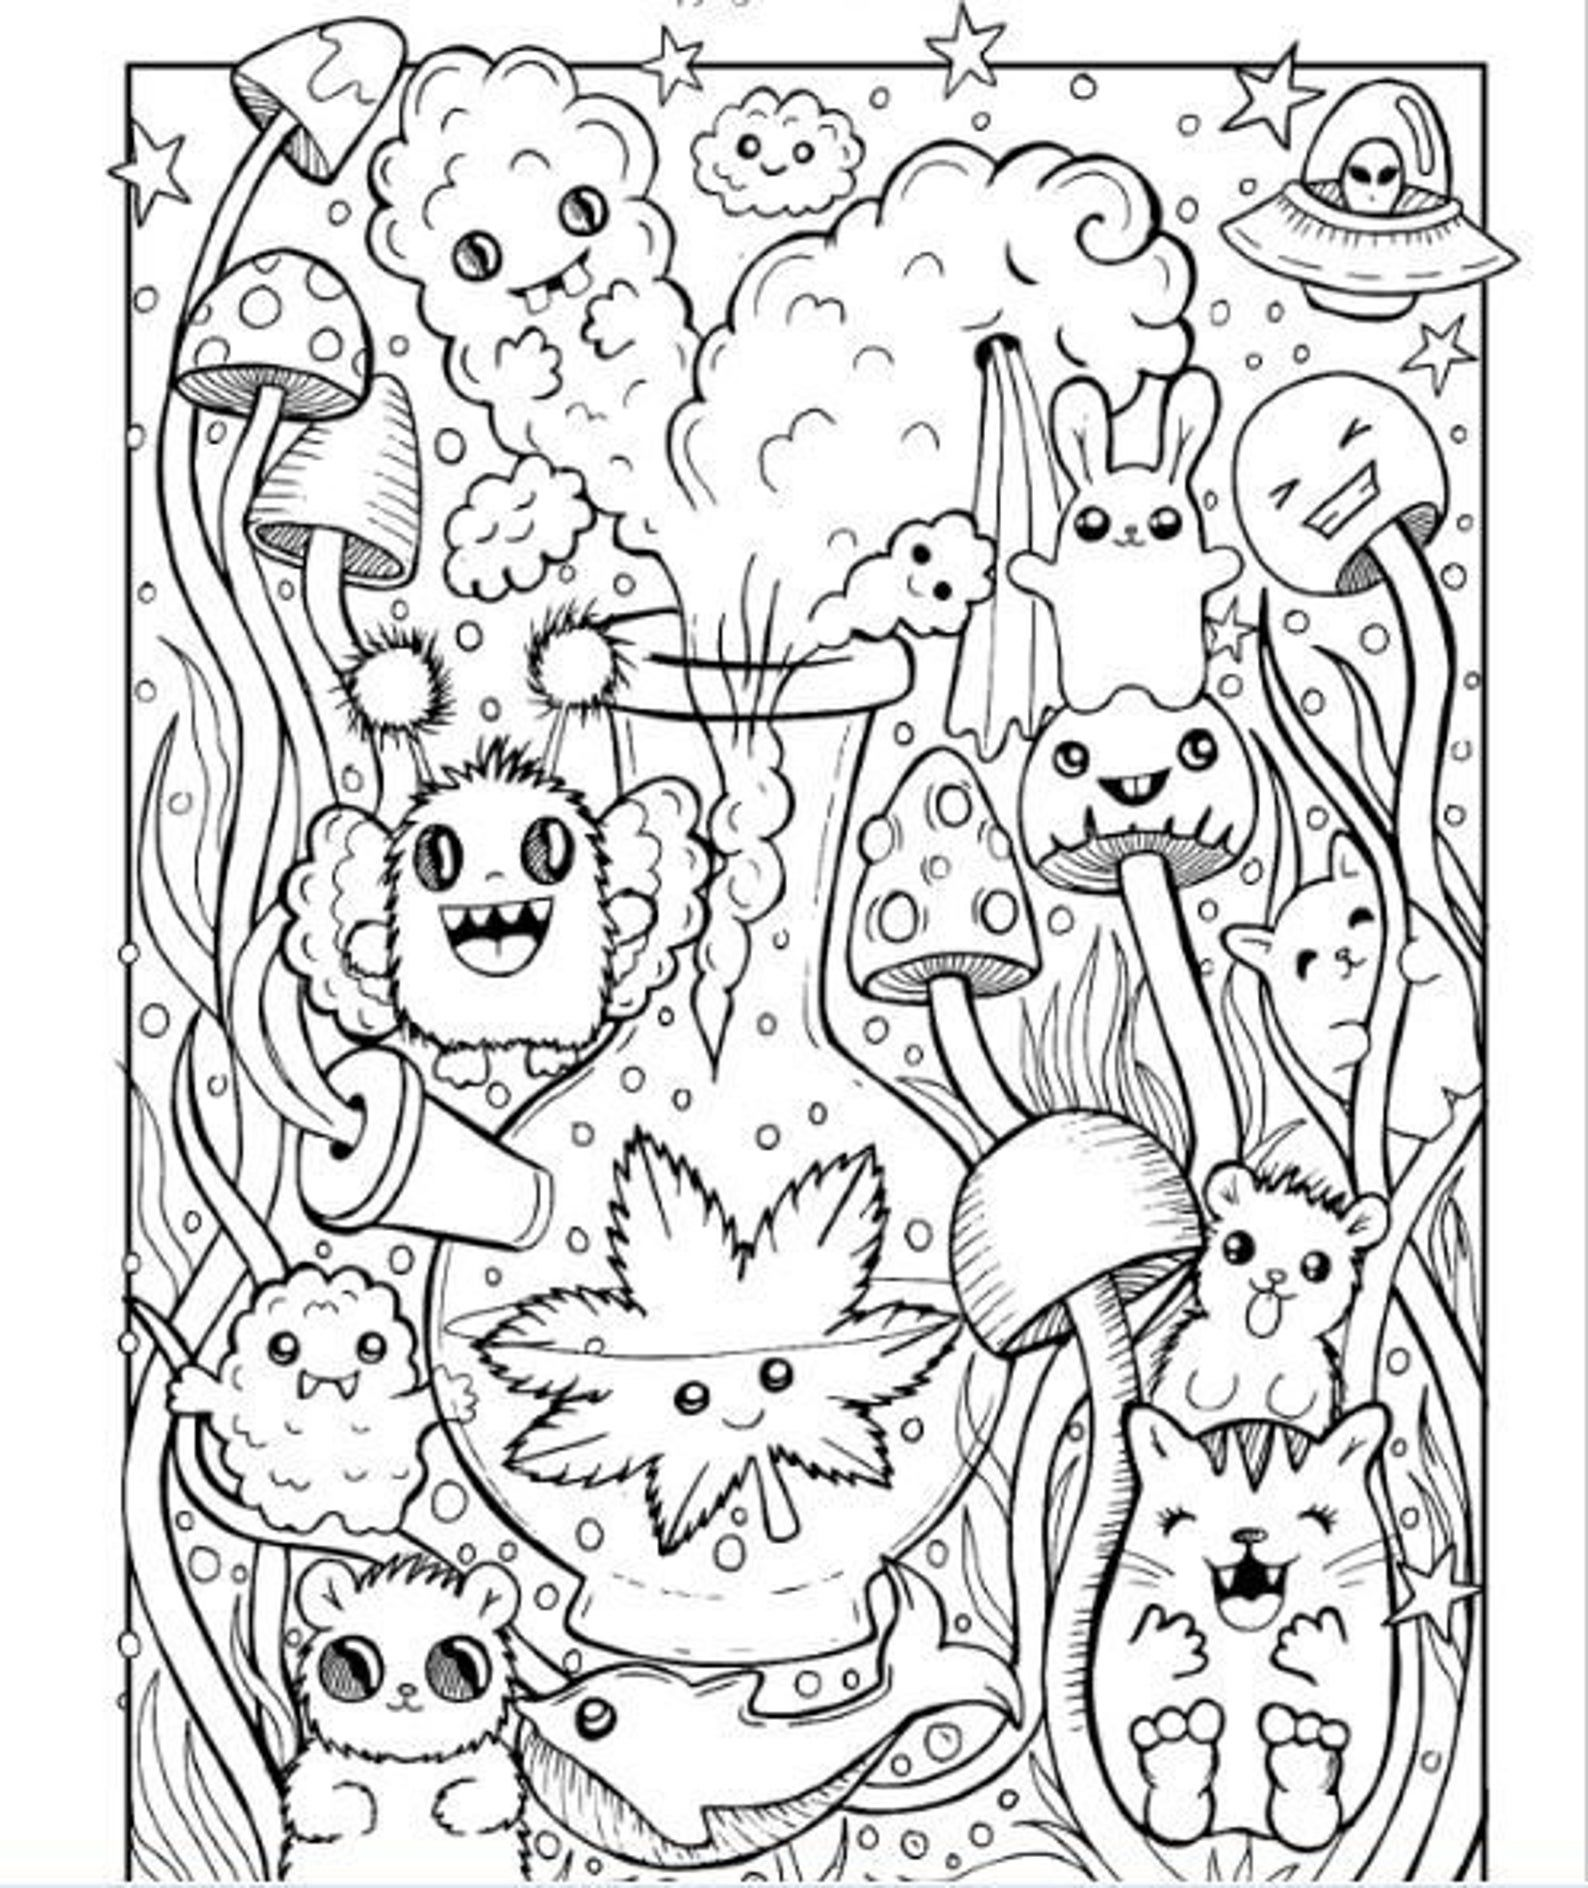 Stoner Coloring Pages for Adults